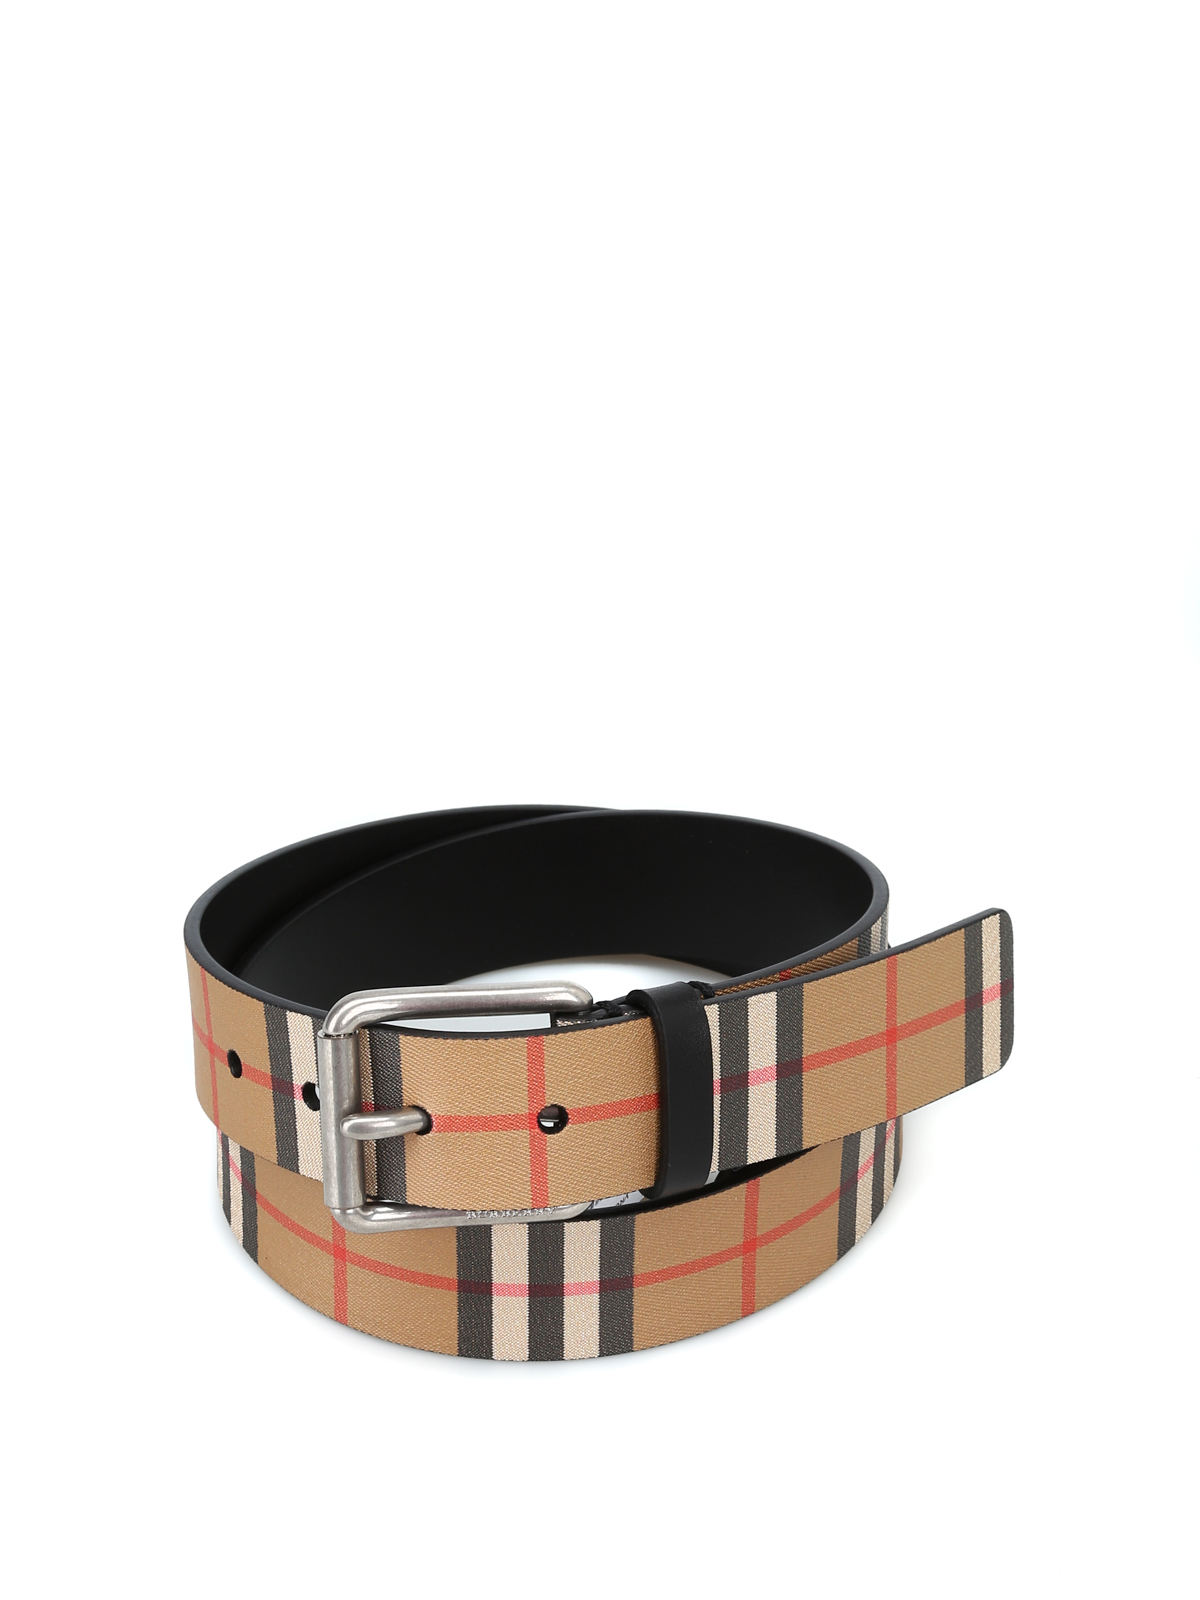 l'ultimo c931c c6660 Burberry - Cintura Mark35 in pelle nera Vintage check ...